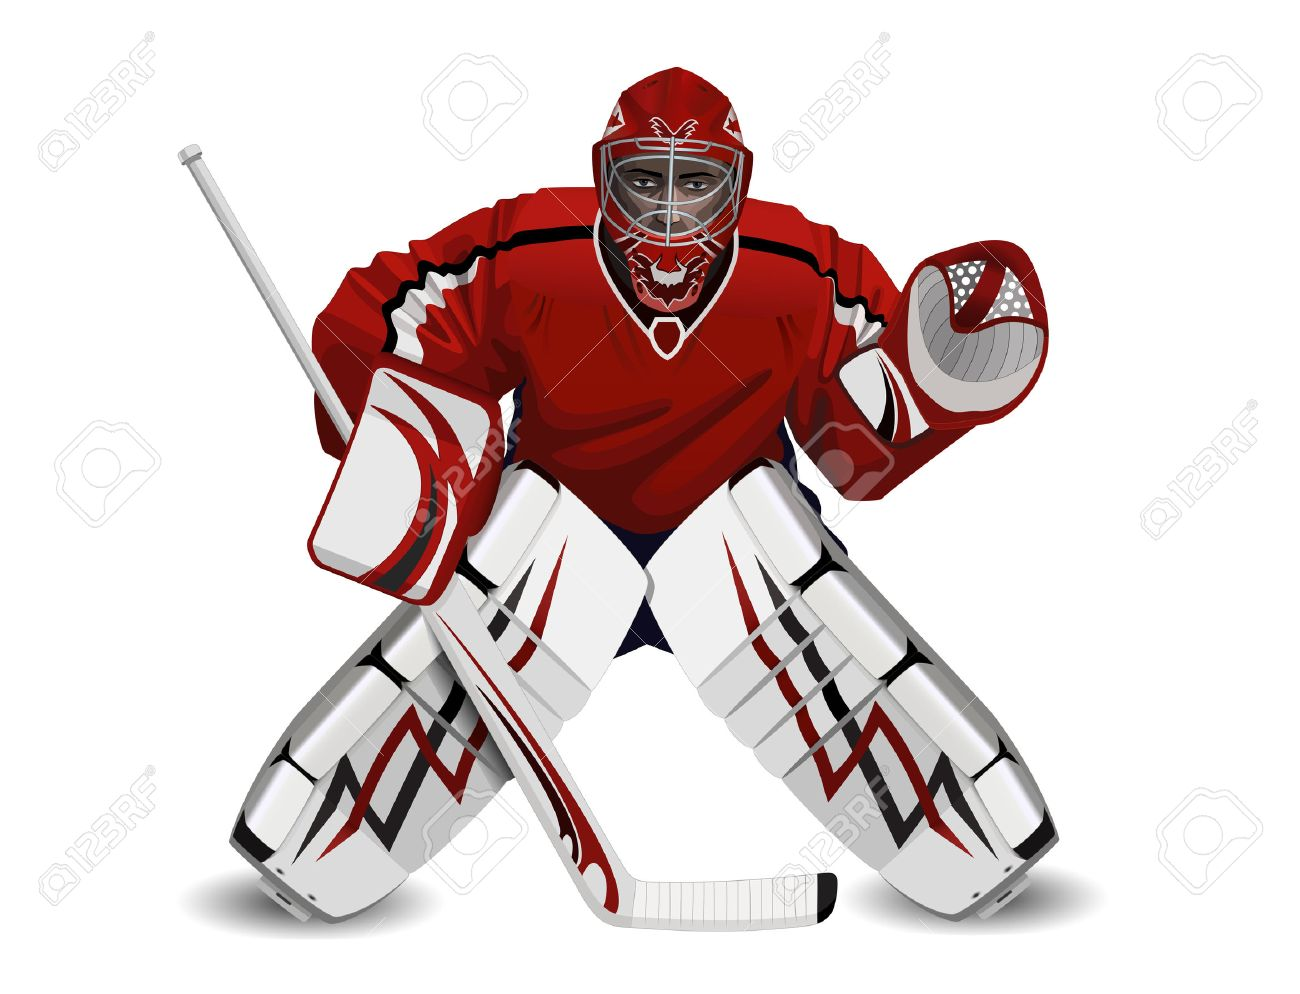 Vector Illustration Of Ice Hockey Goalie Royalty Free Cliparts